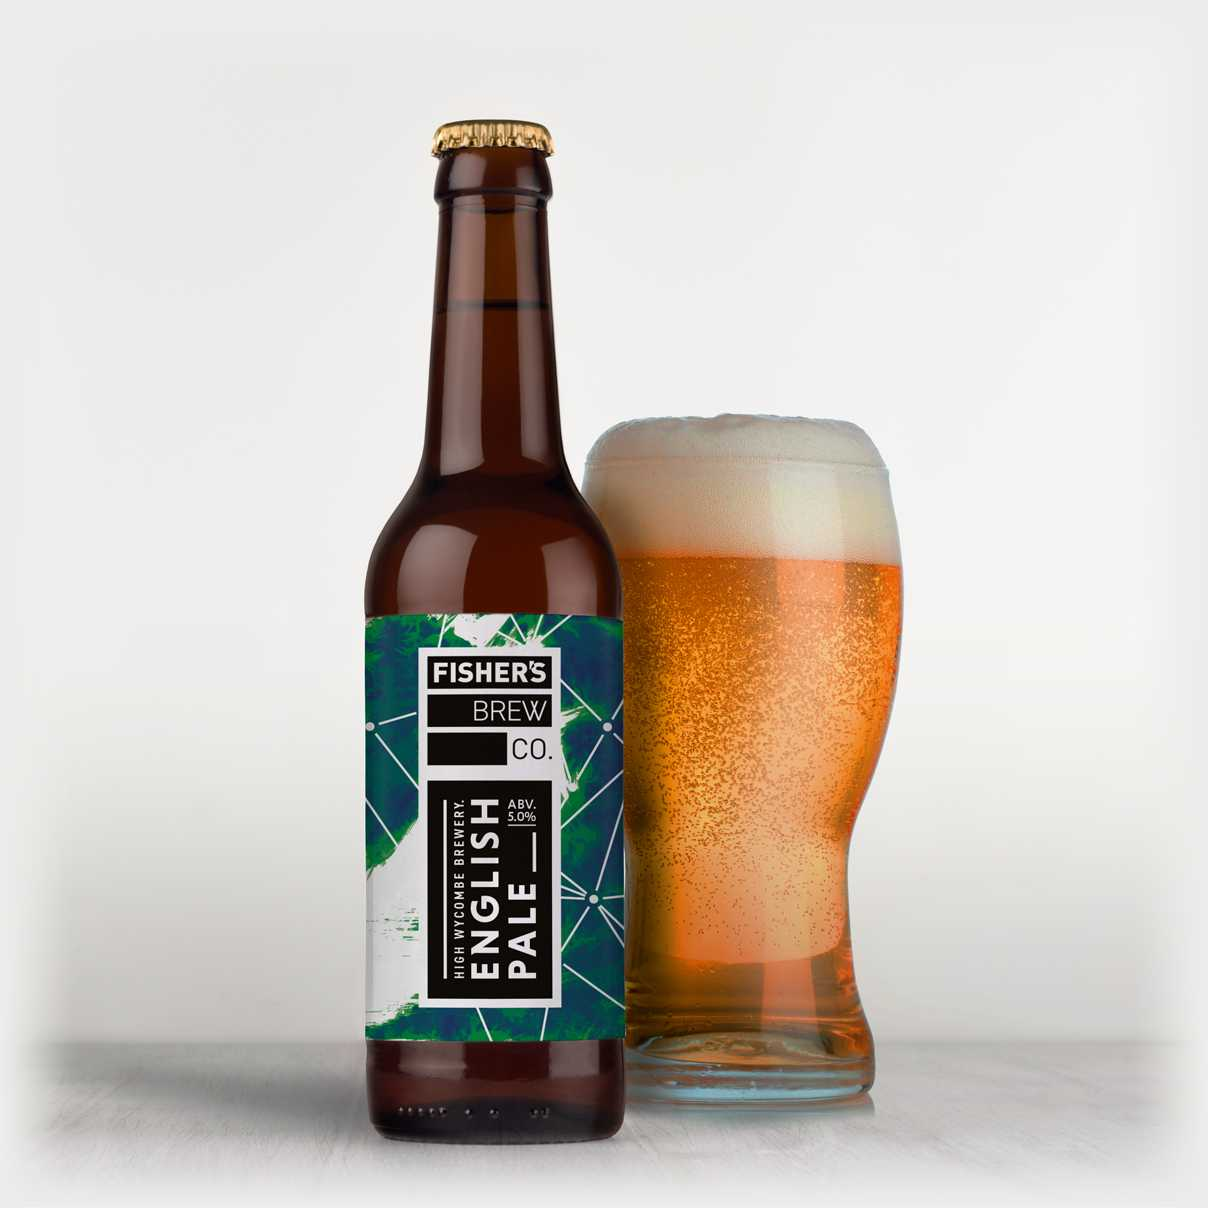 Fisher's branded English Pale Ale bottle and glass of beer